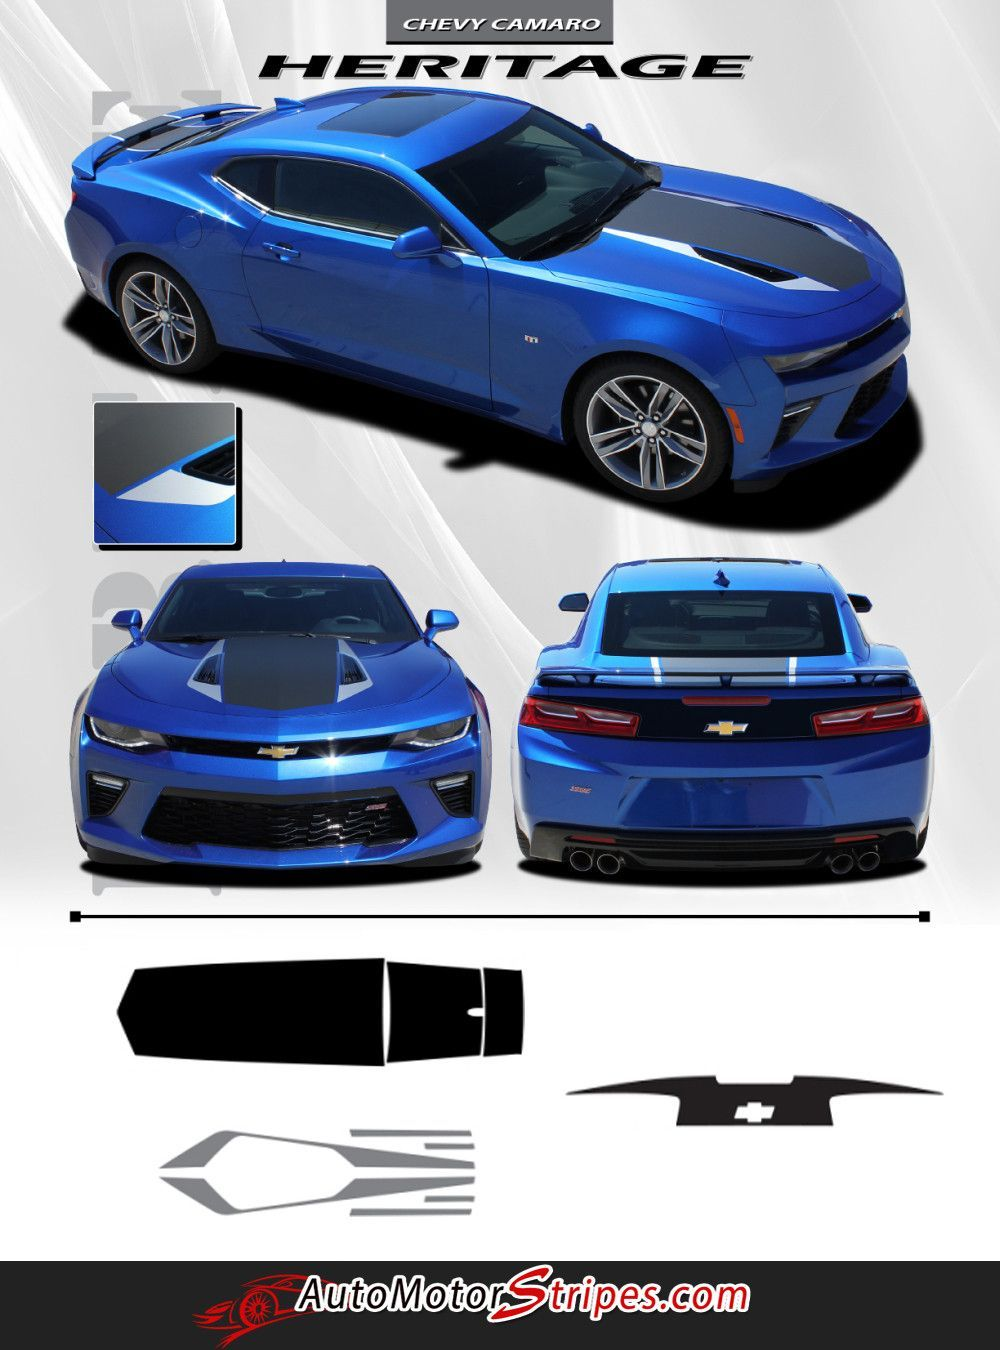 2016 2017 2018 chevy camaro 50th anniversary heritage indy 500 style center wide hood trunk spoiler rally racing 3m stripes kit fits ss rs v6